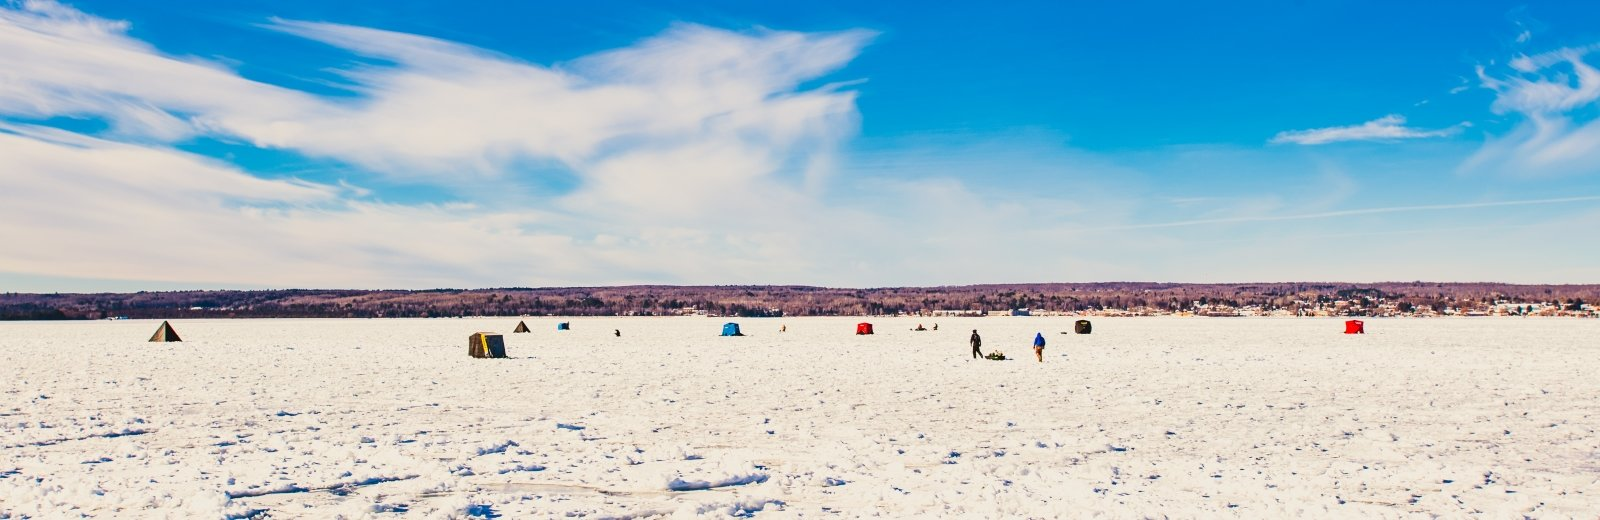 A wide landscape with blue sky and white ice dotted with people and ice fishing huts.